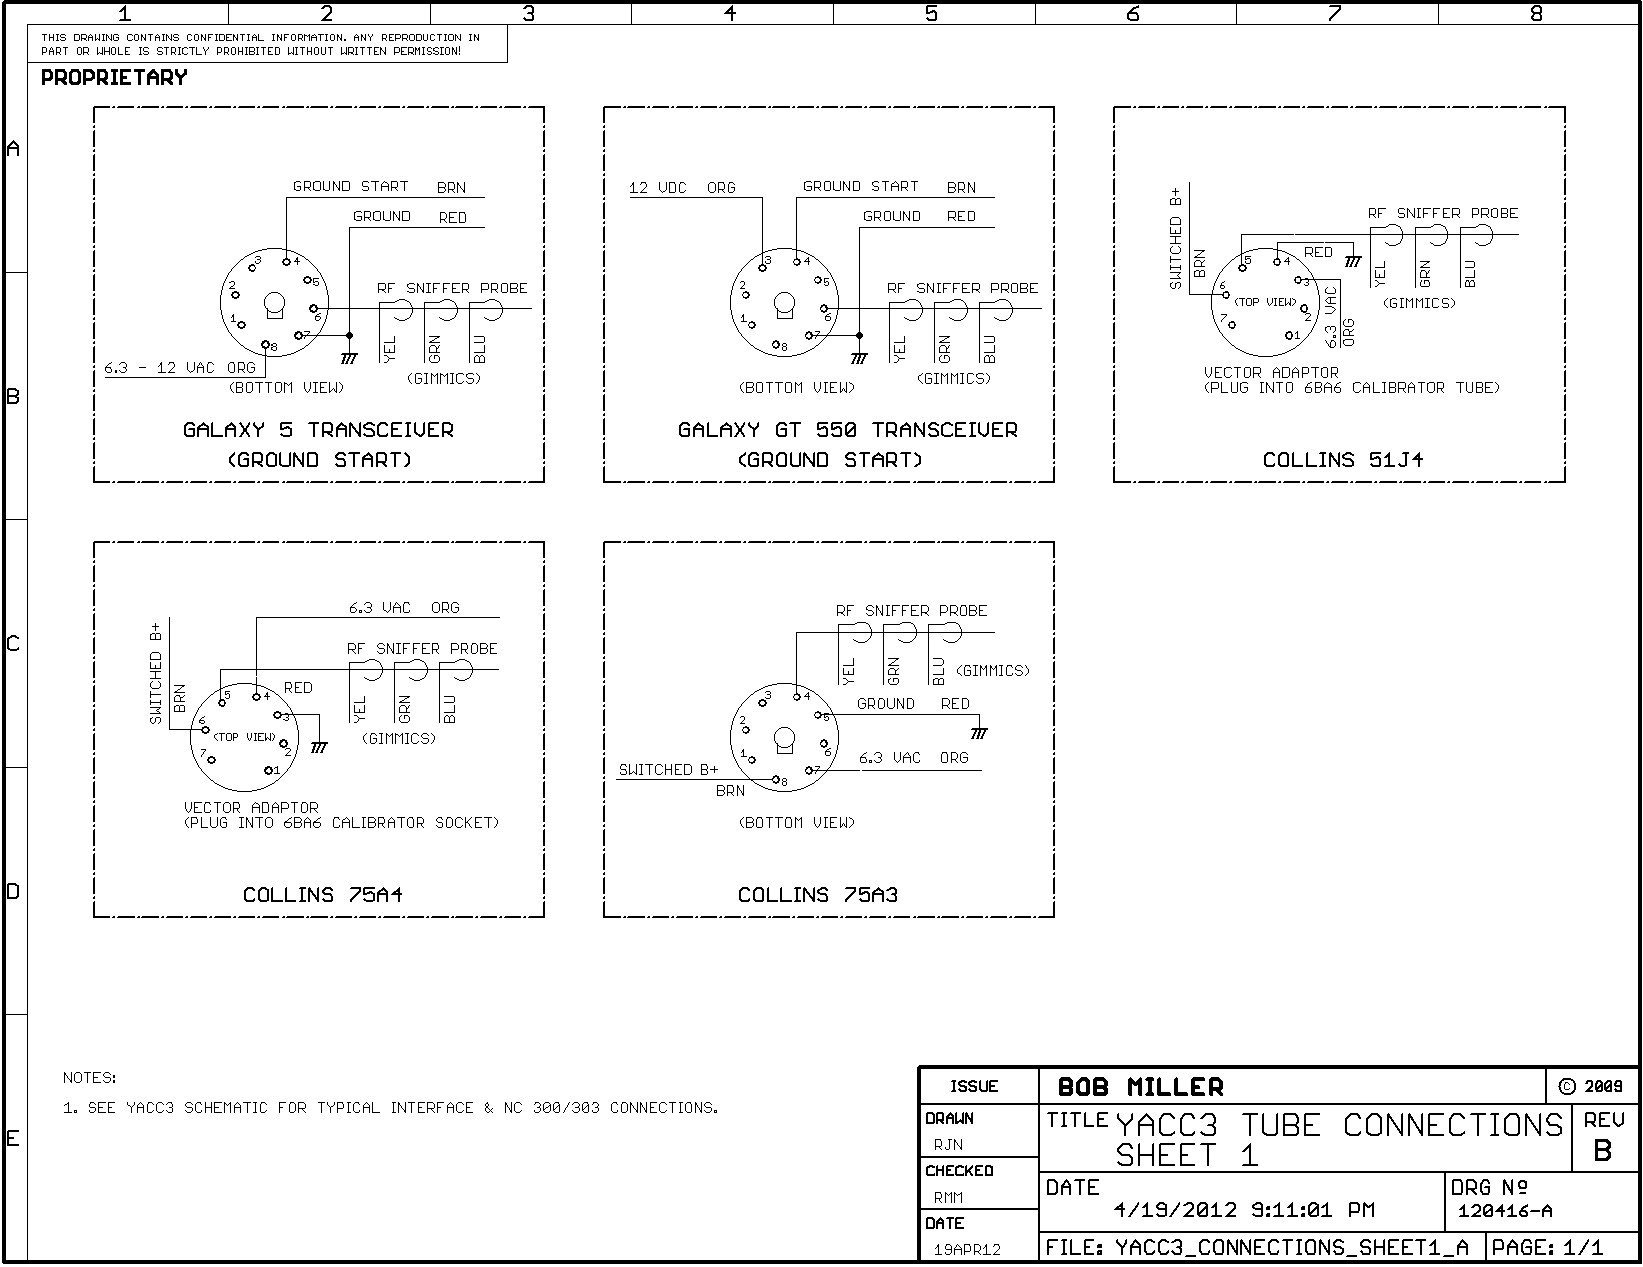 Miller 14 Pin Connector Wiring Diagram 38 Images For 6 Schematic3 Yacc3 Connections Sheet1 B Yacc Module Documentation At